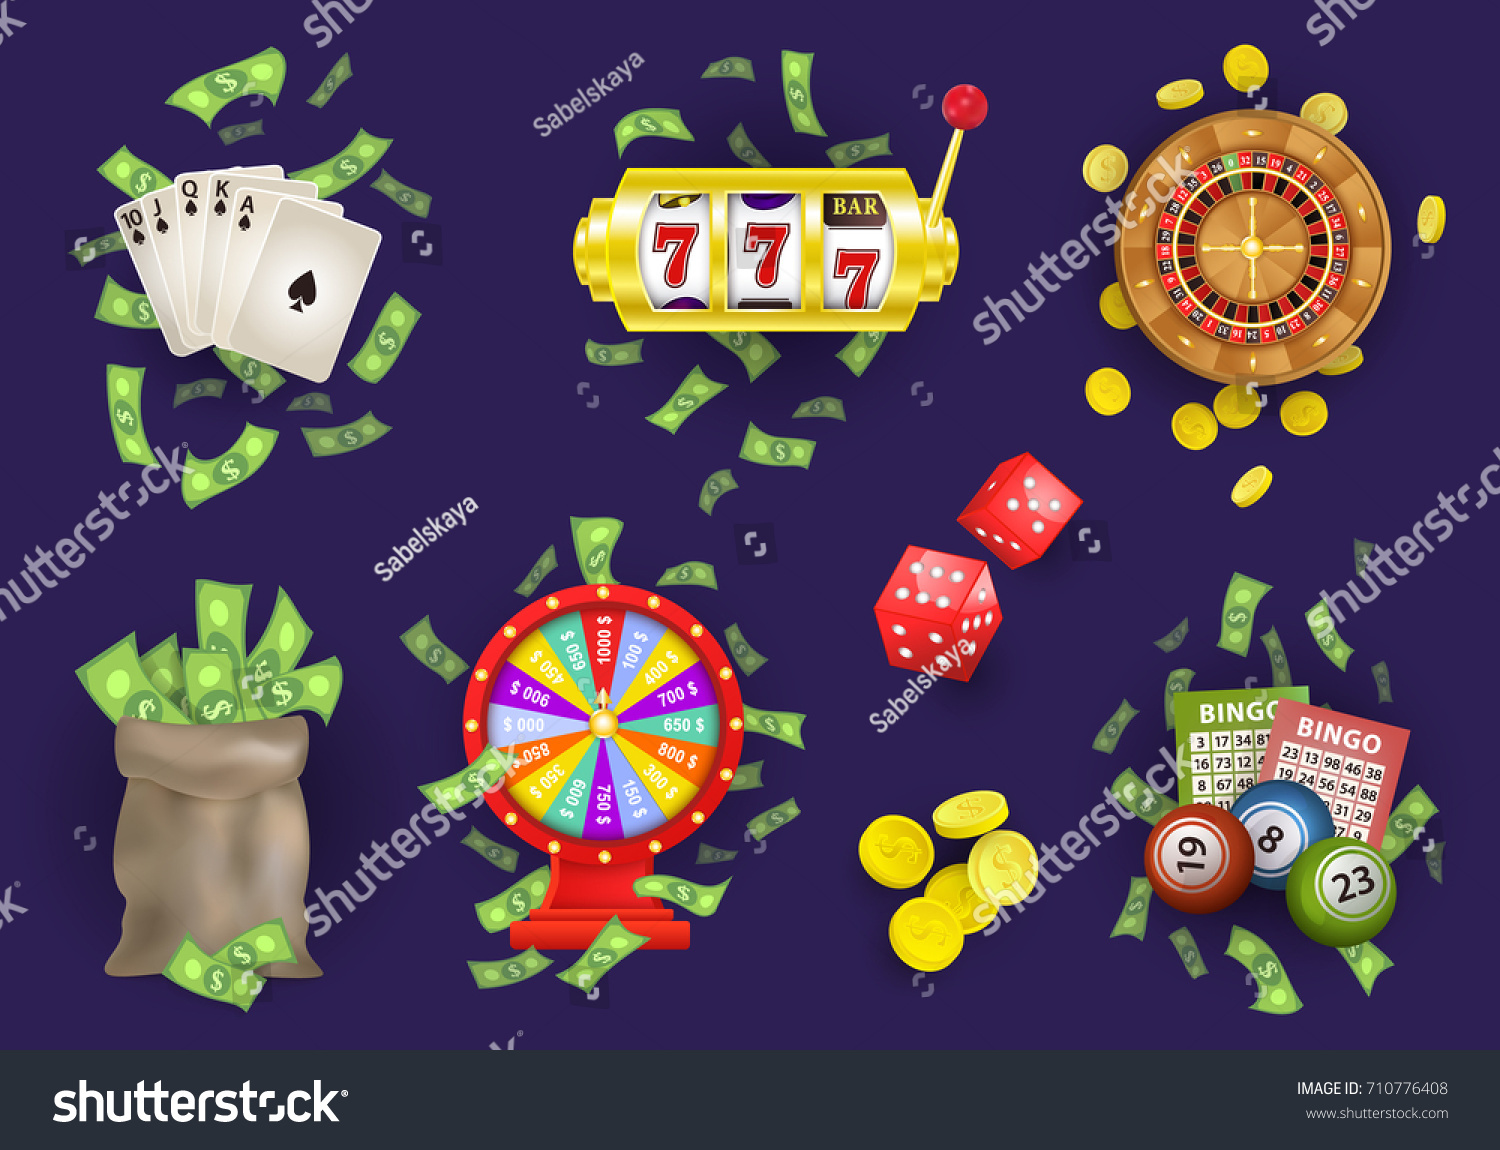 Traditional european roulette table vector illustration stock vector - Vector Flat Roulette Wheel Golden Coins Wheel Of Fortune Cash Money Bag